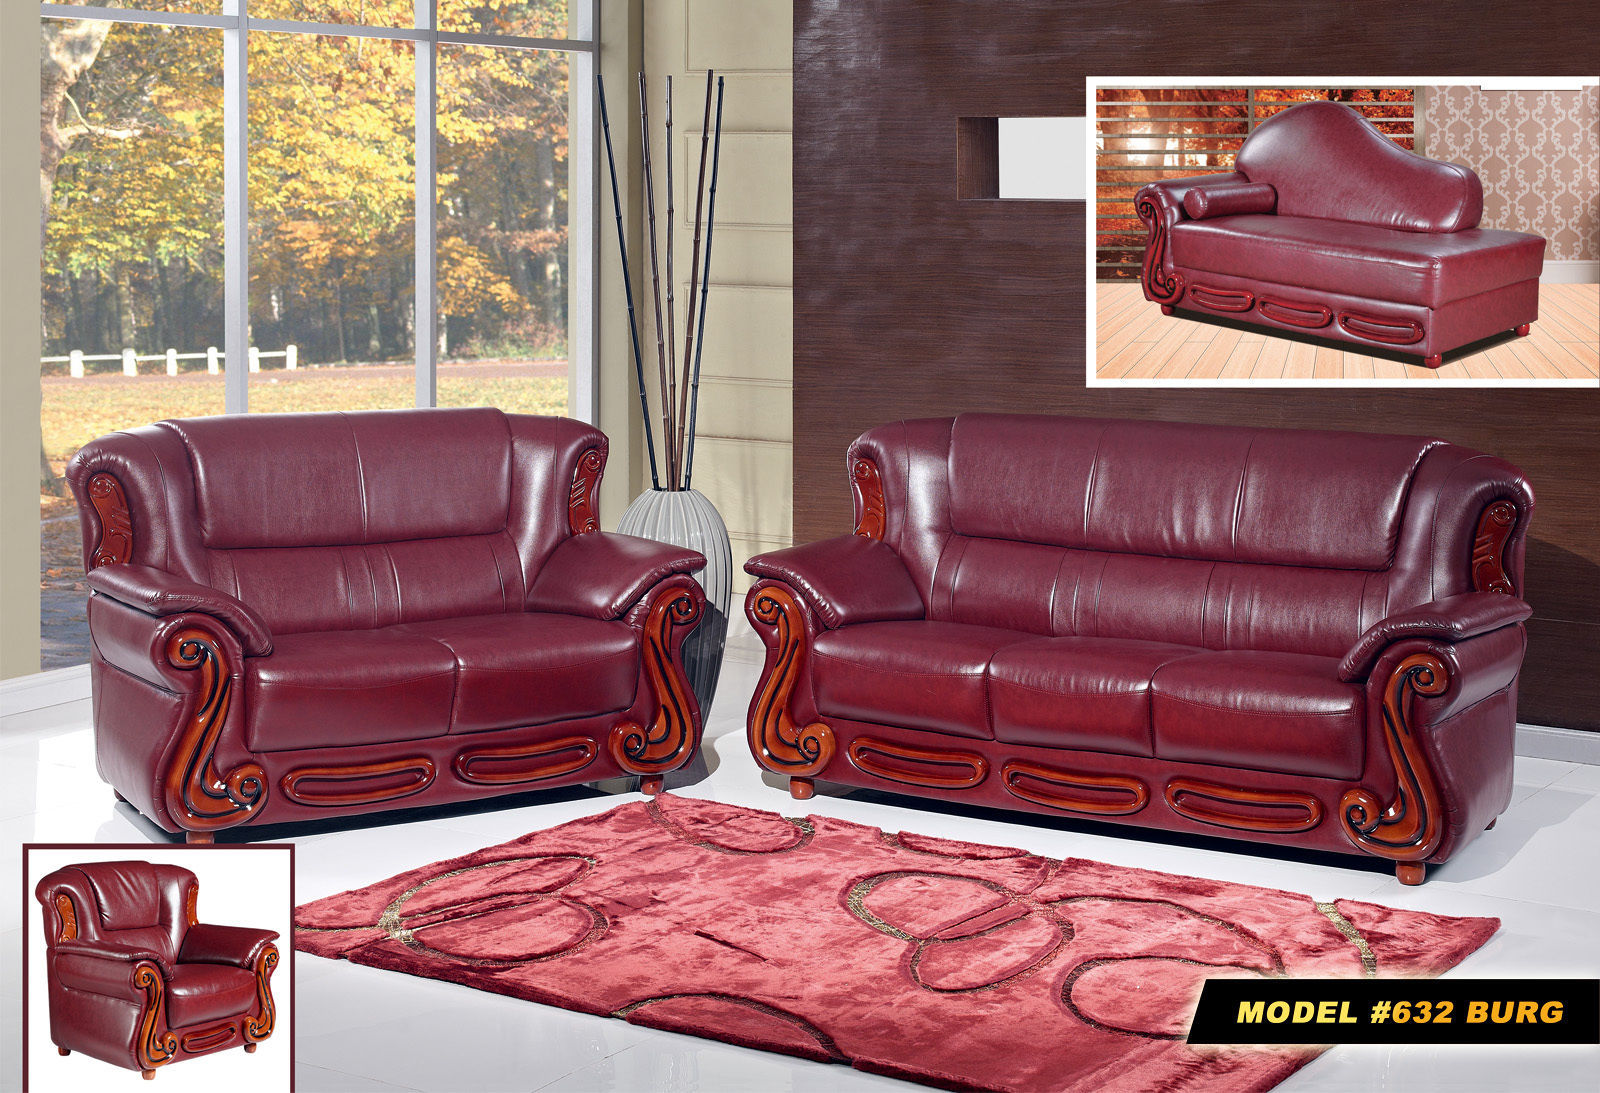 Meridian 632 Bella Living Room Set 3pcs in Burgundy Bonded Leather Traditional